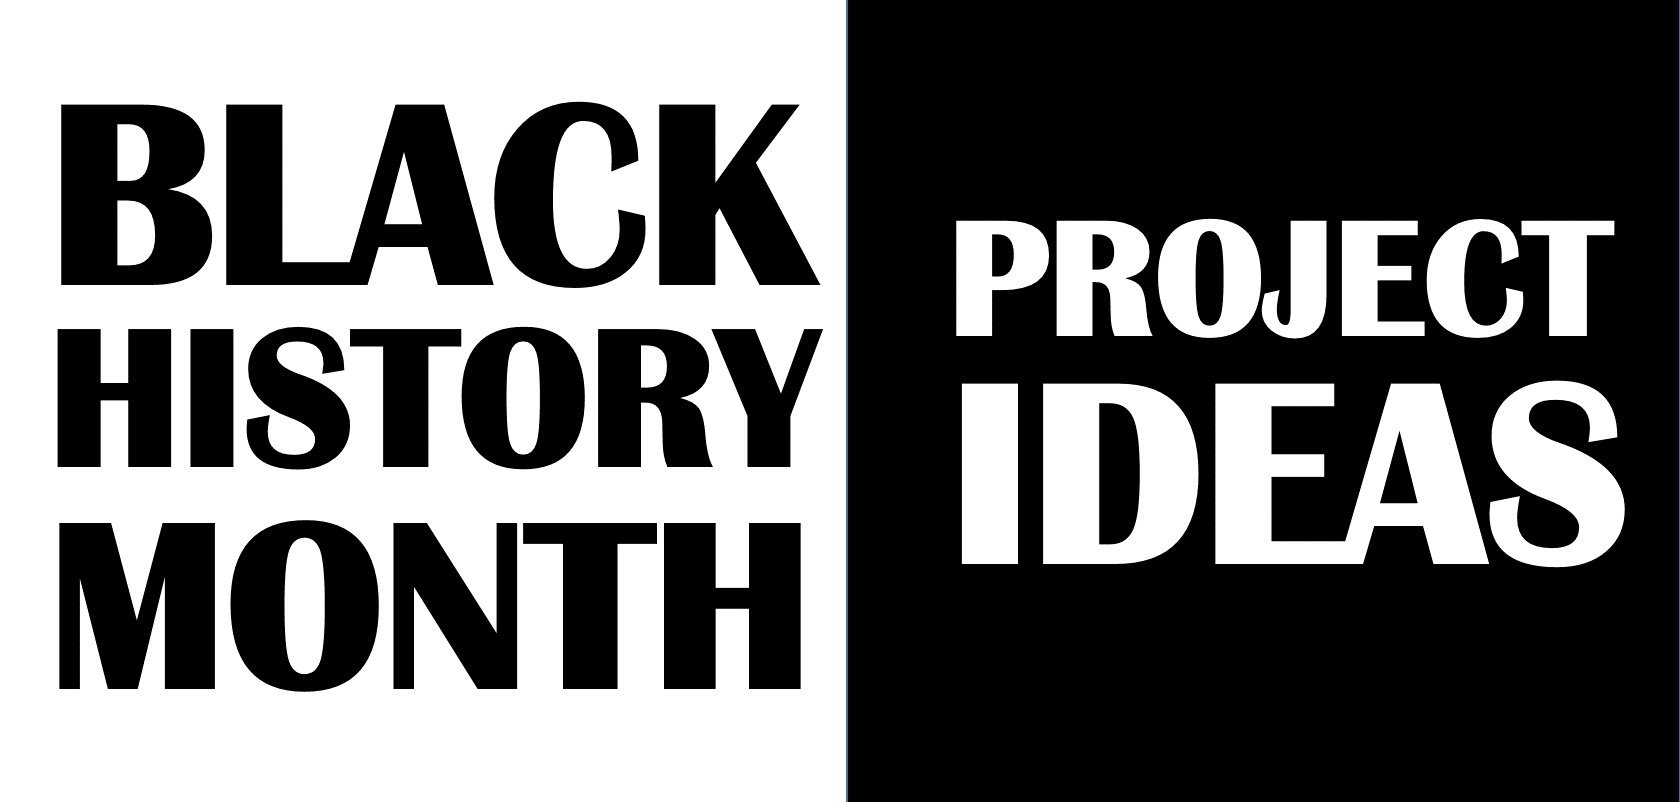 10 Fashionable Black History Month Ideas For Church black history month project ideas youtube 2 2021